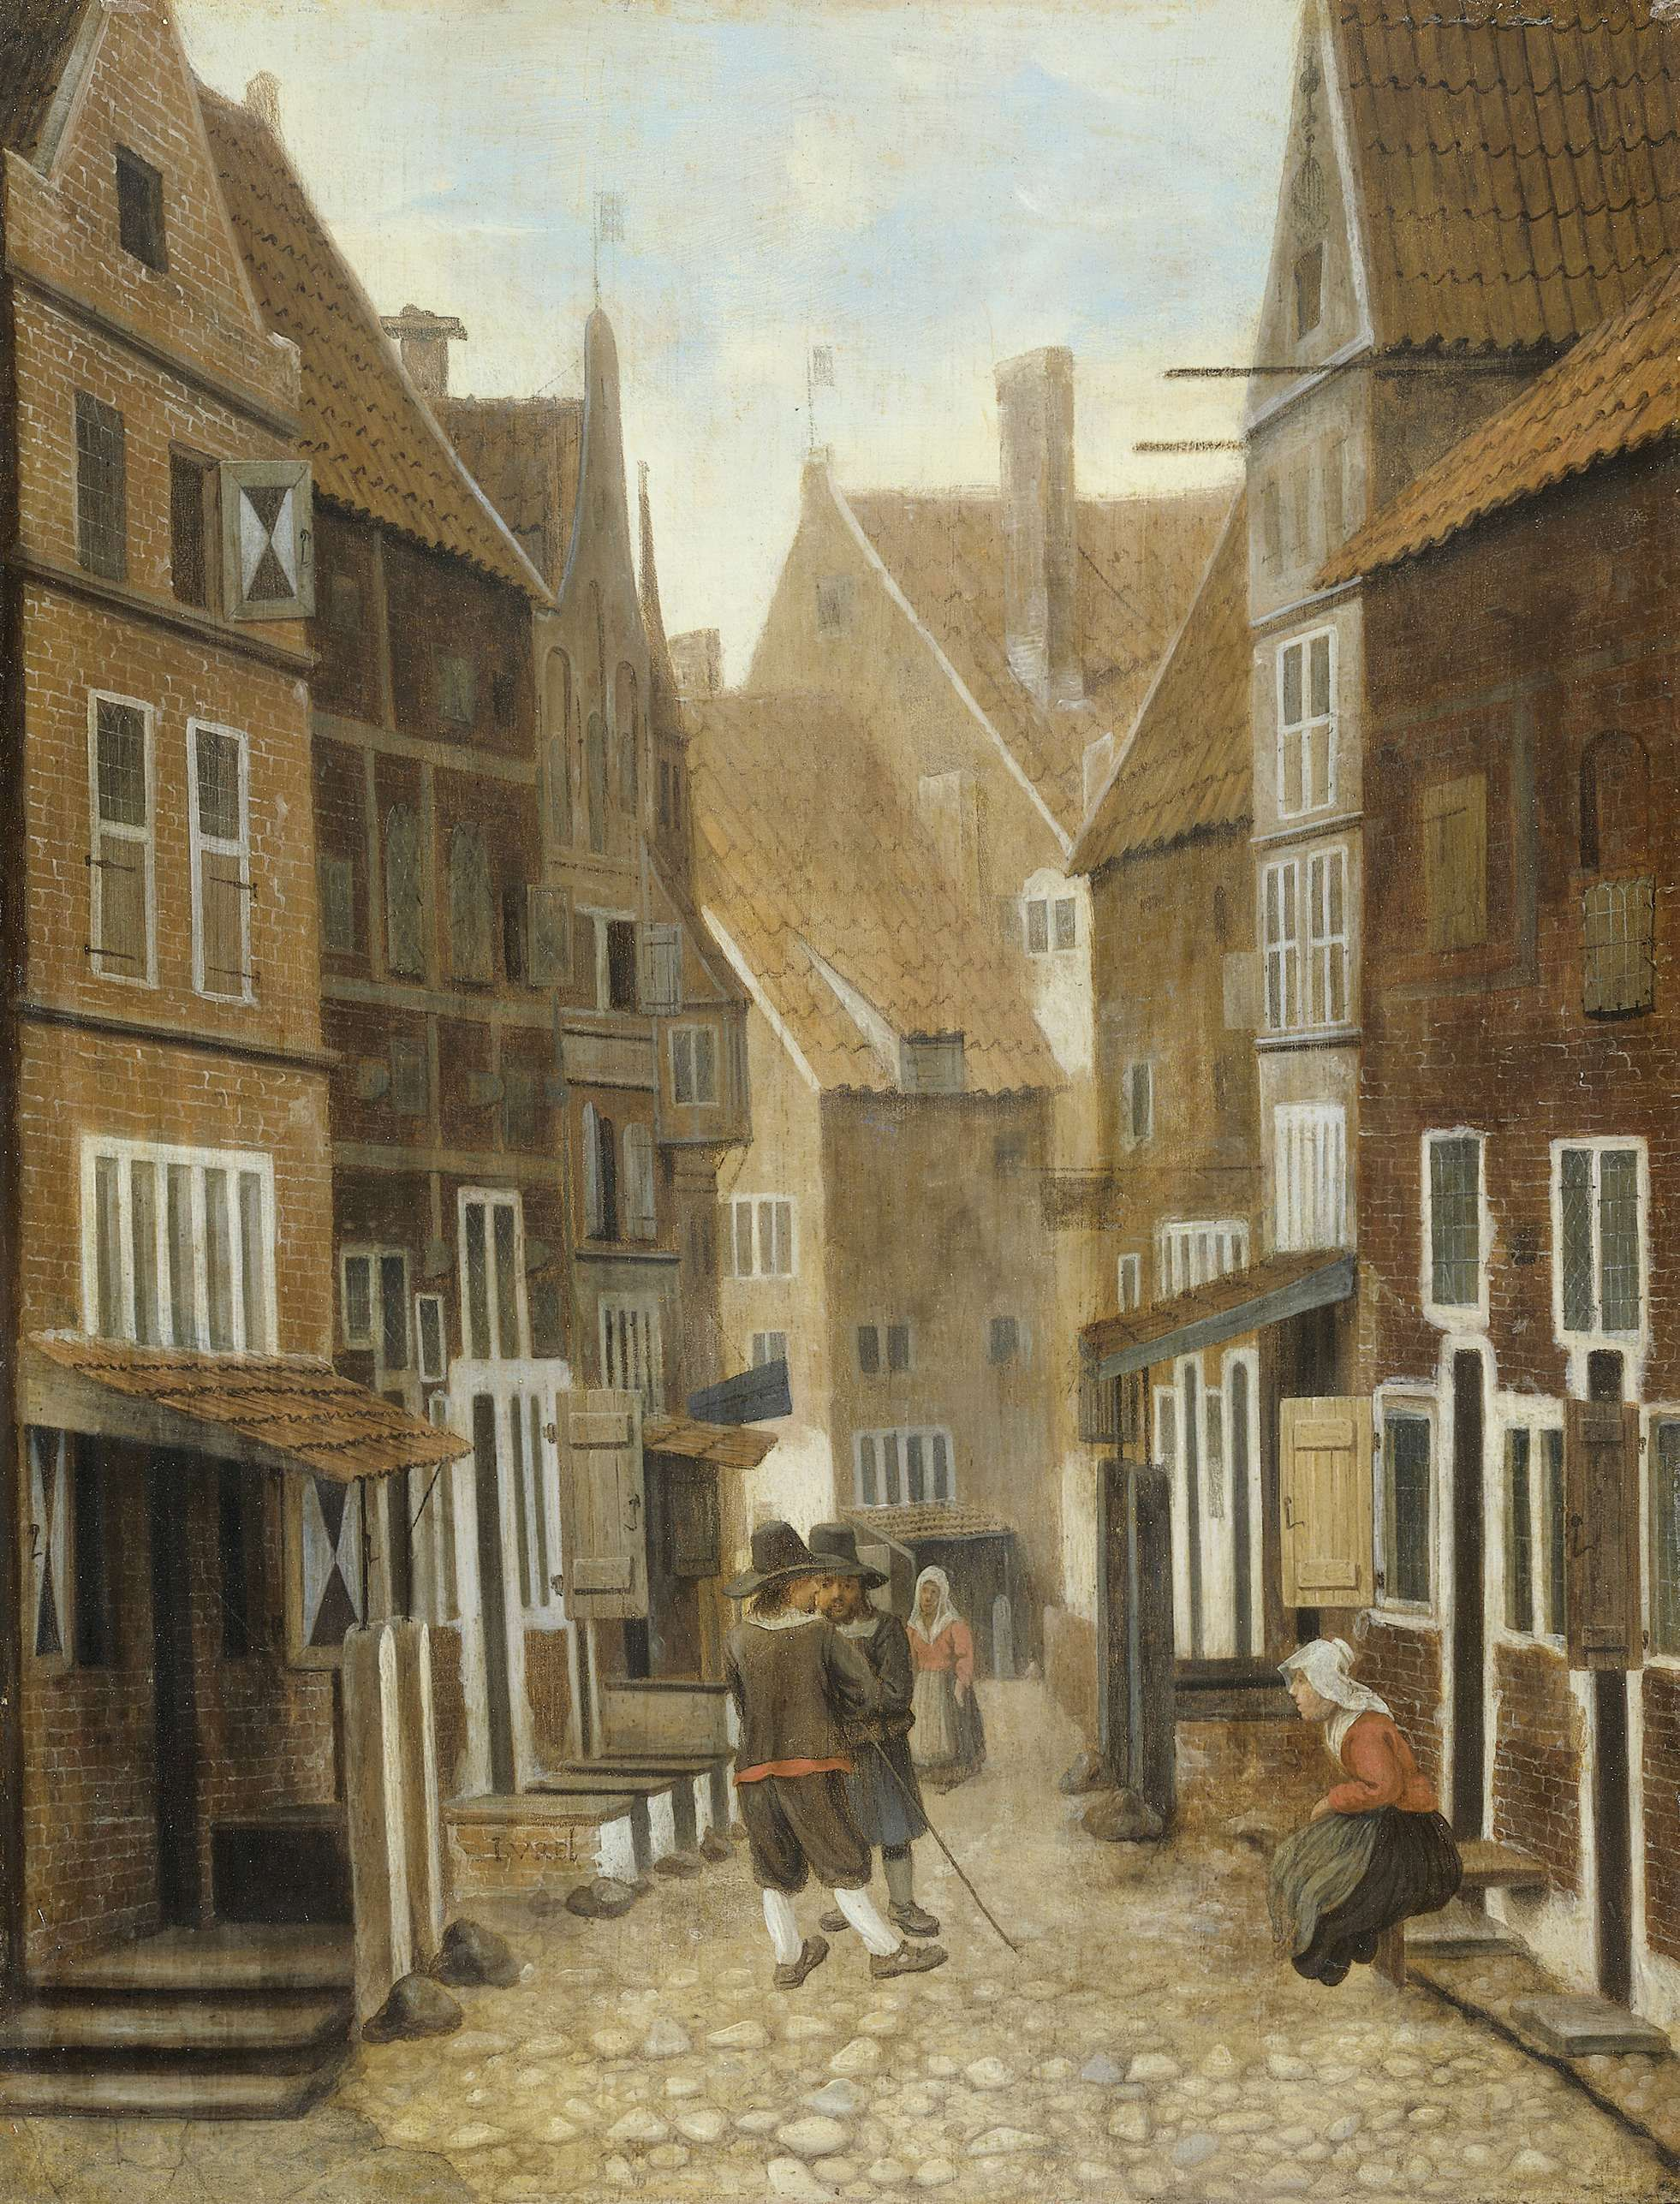 Jacob Vrel, View of a Town, 1654 - 1662.  Oil on panel, h 36 cm × w 28 cm.